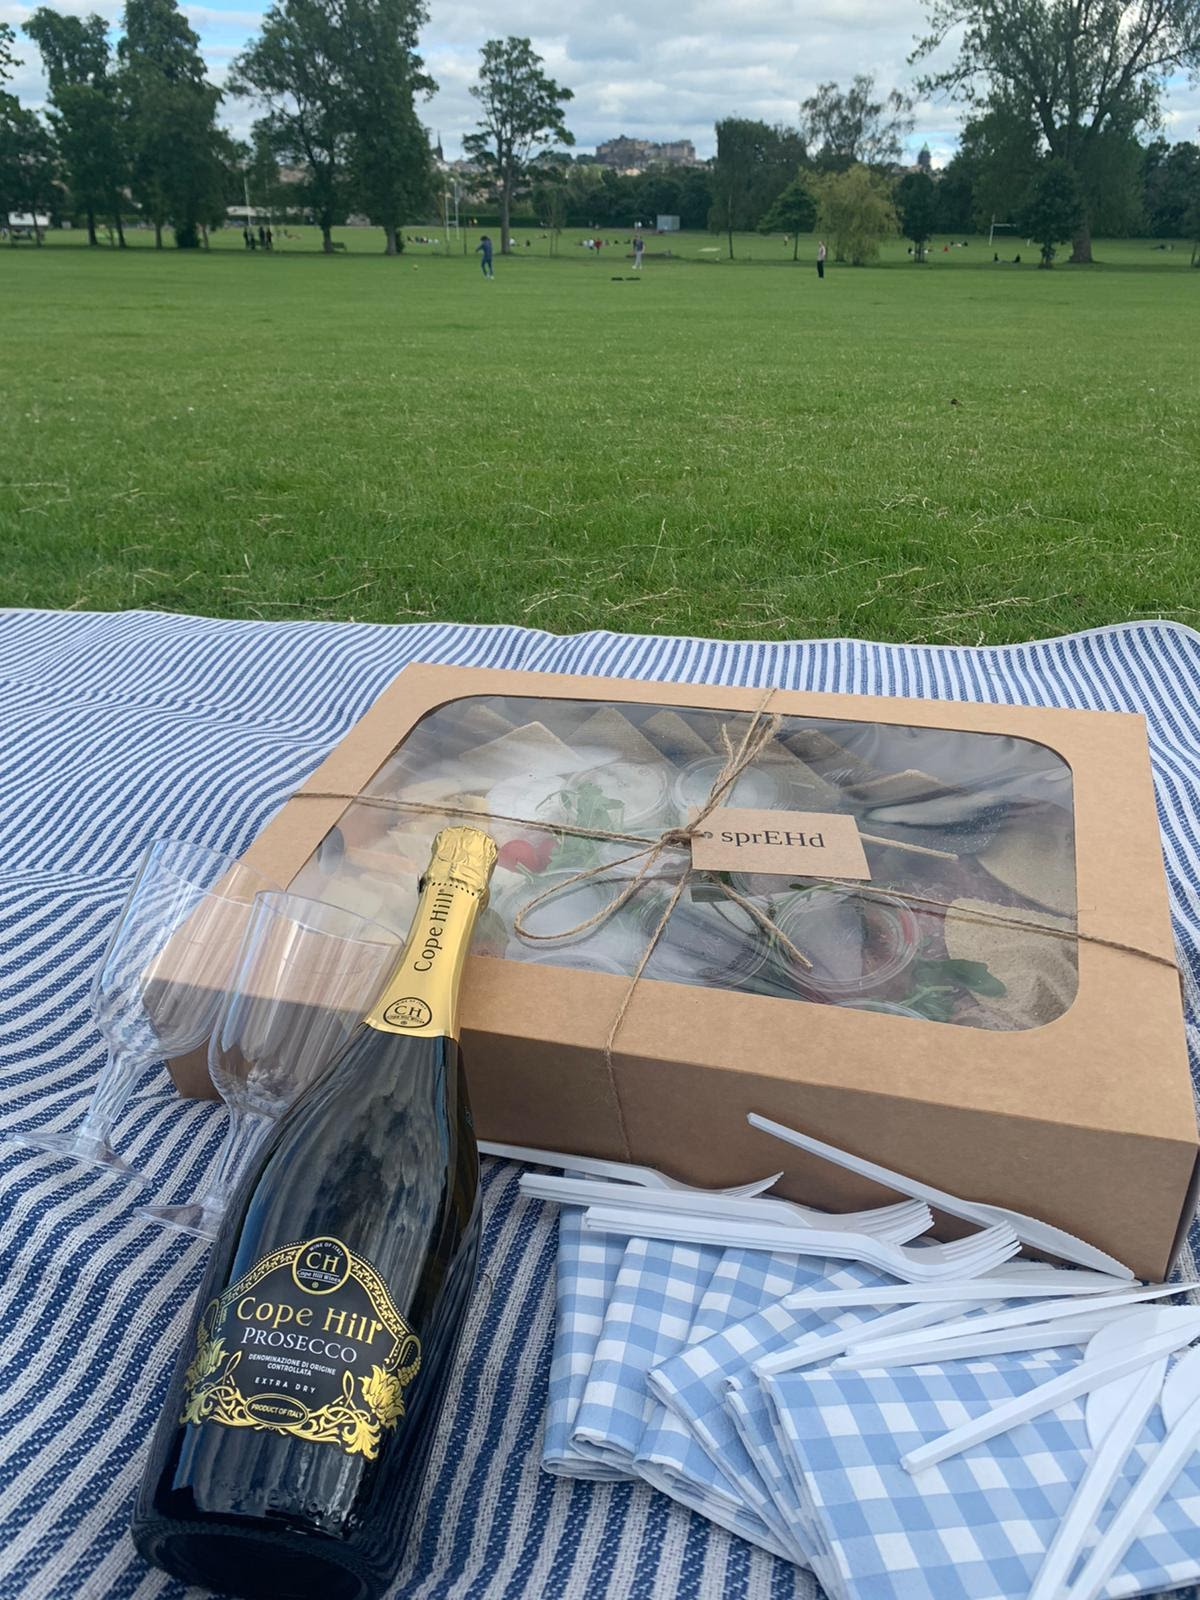 SprEHd box and wine in Inverleith Park